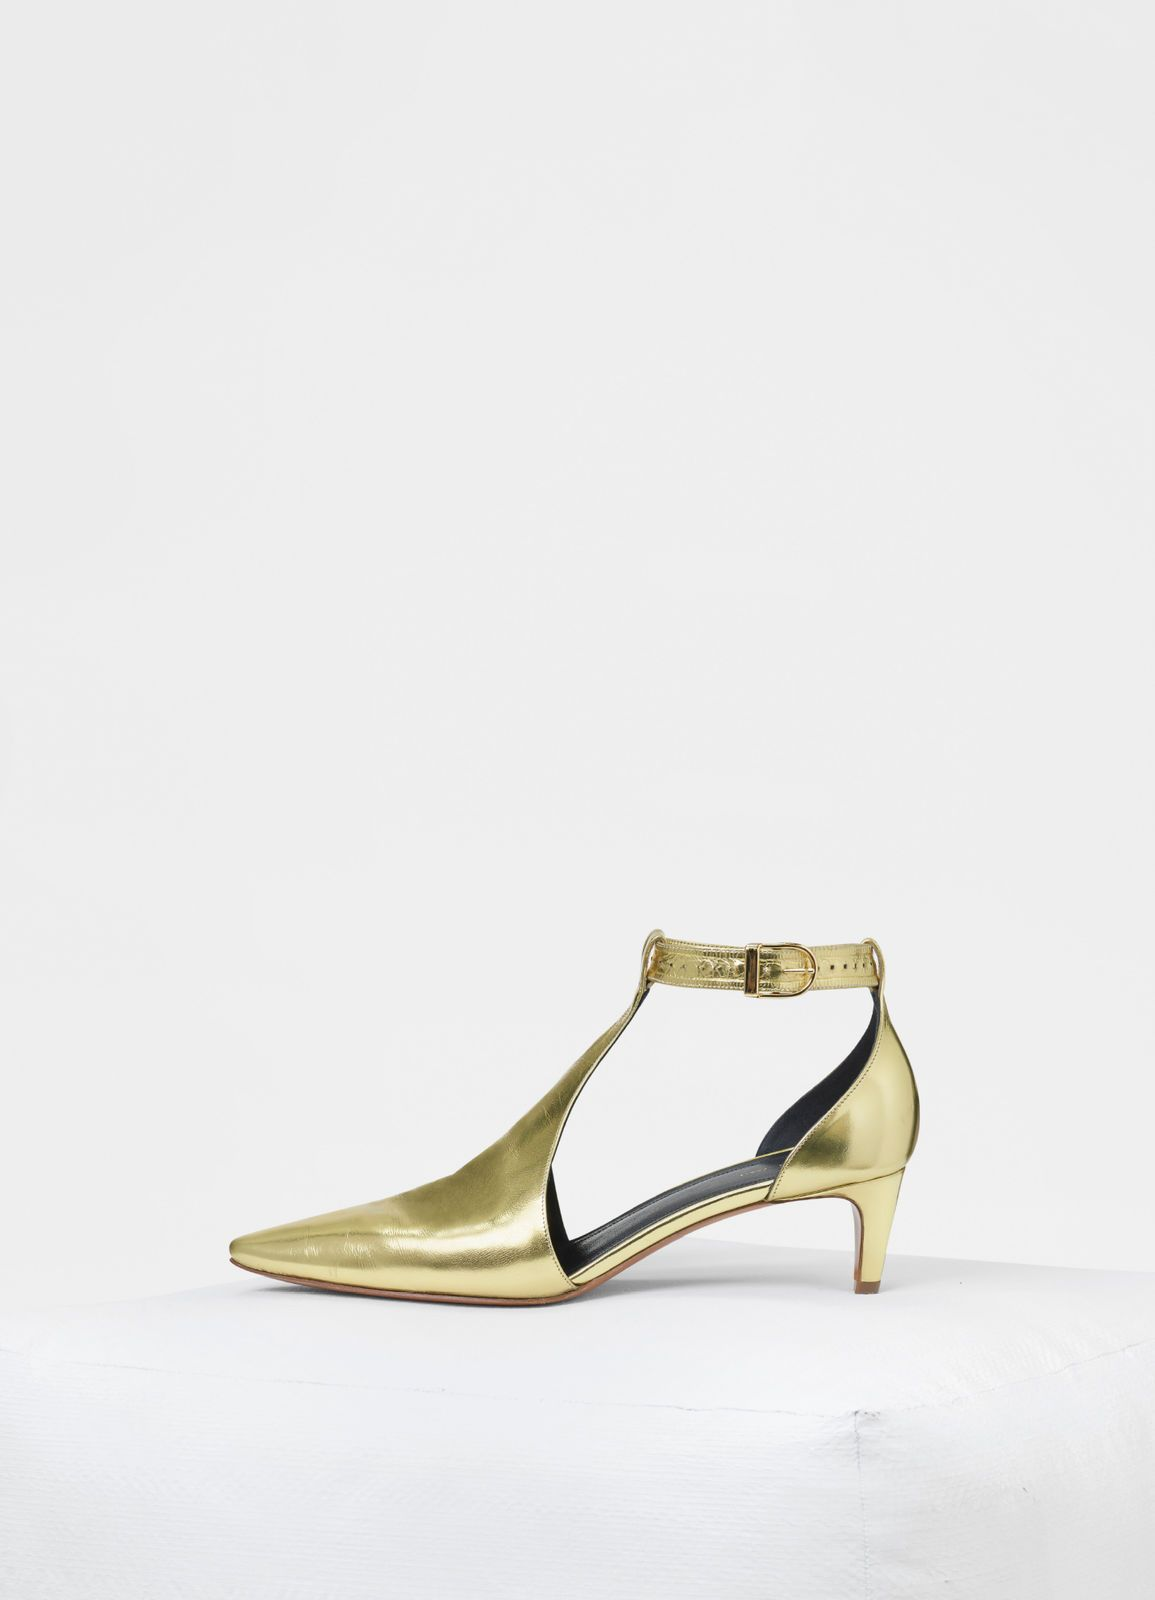 Kitten Heel Salome In Laminated Nappa Lambskin Celine Heels Kitten Heels Celine Shoes